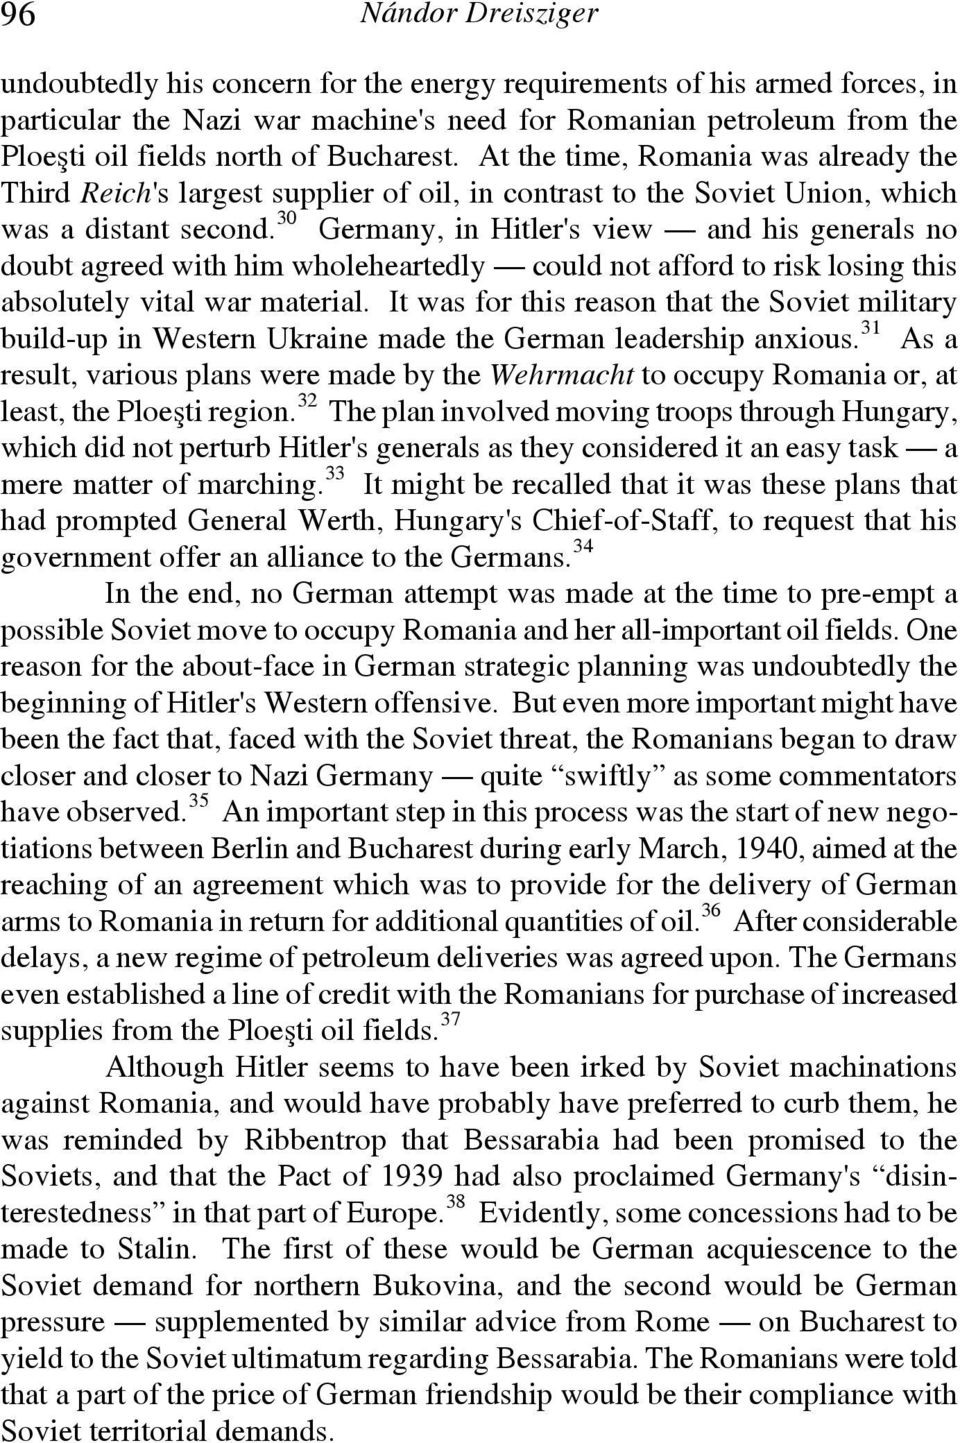 30 Germany, in Hitler's view and his generals no doubt agreed with him wholeheartedly could not afford to risk losing this absolutely vital war material.